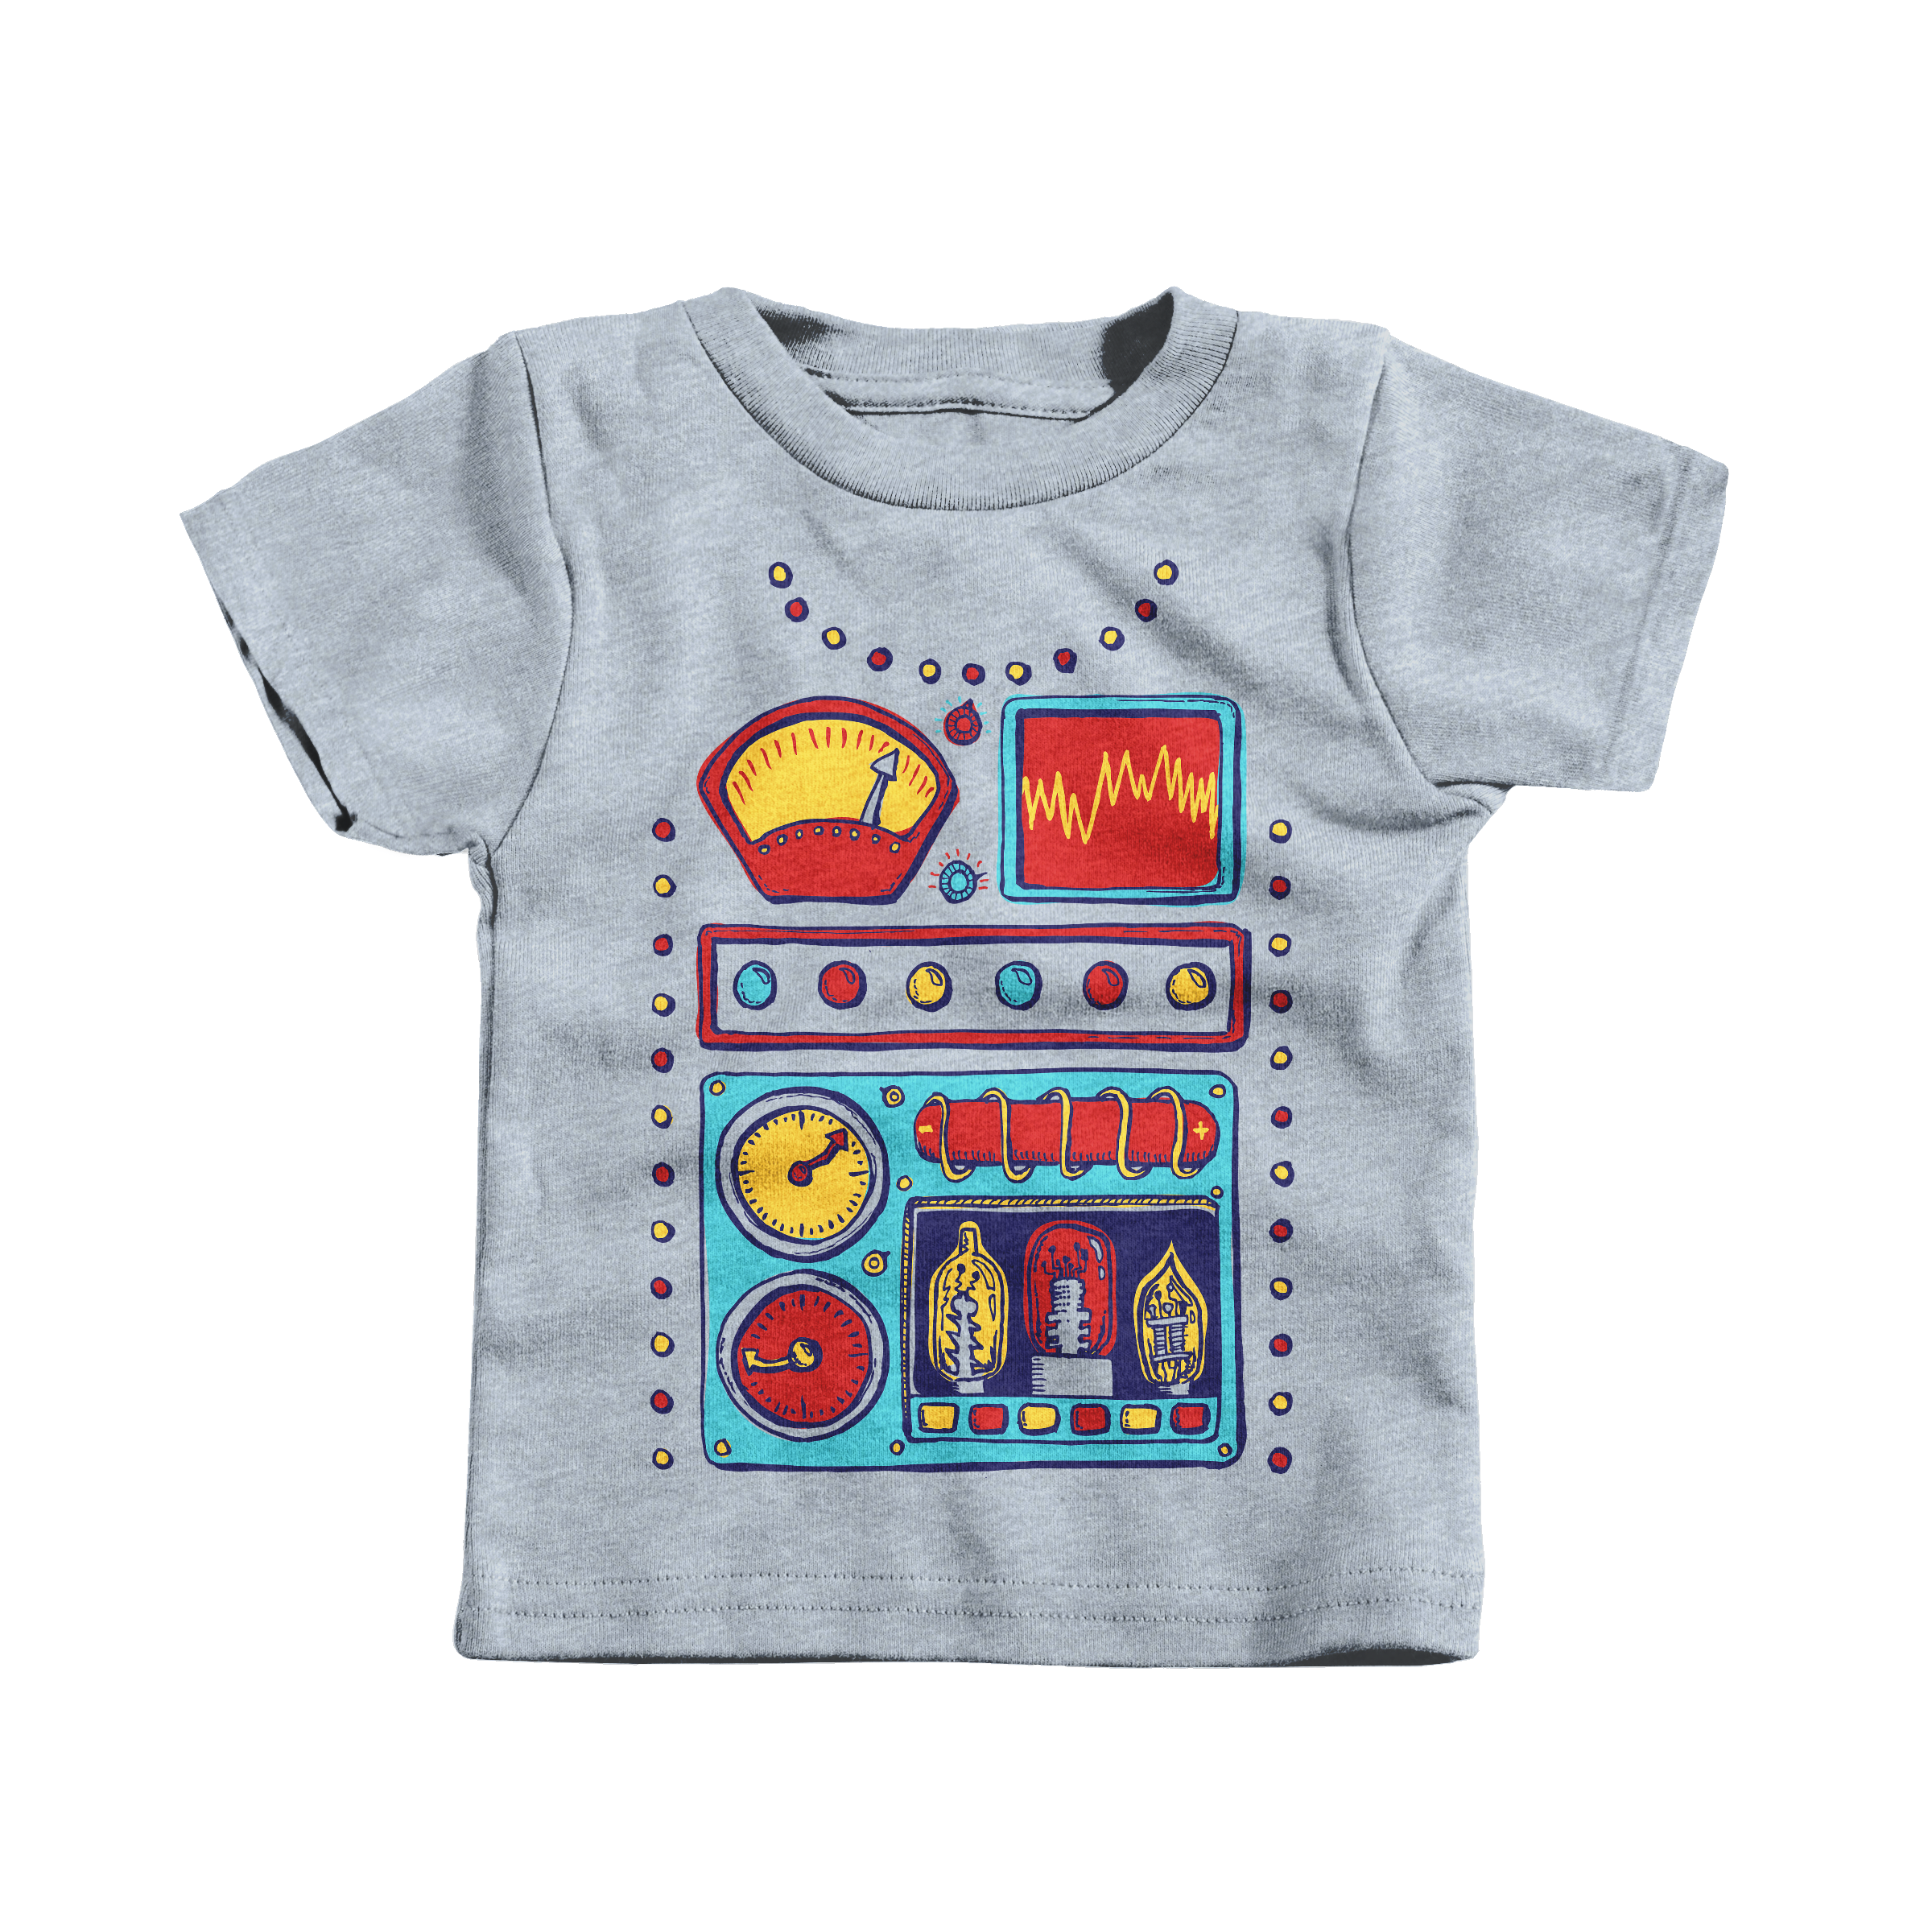 Retrobot 2000 Heather Grey (T-Shirt)